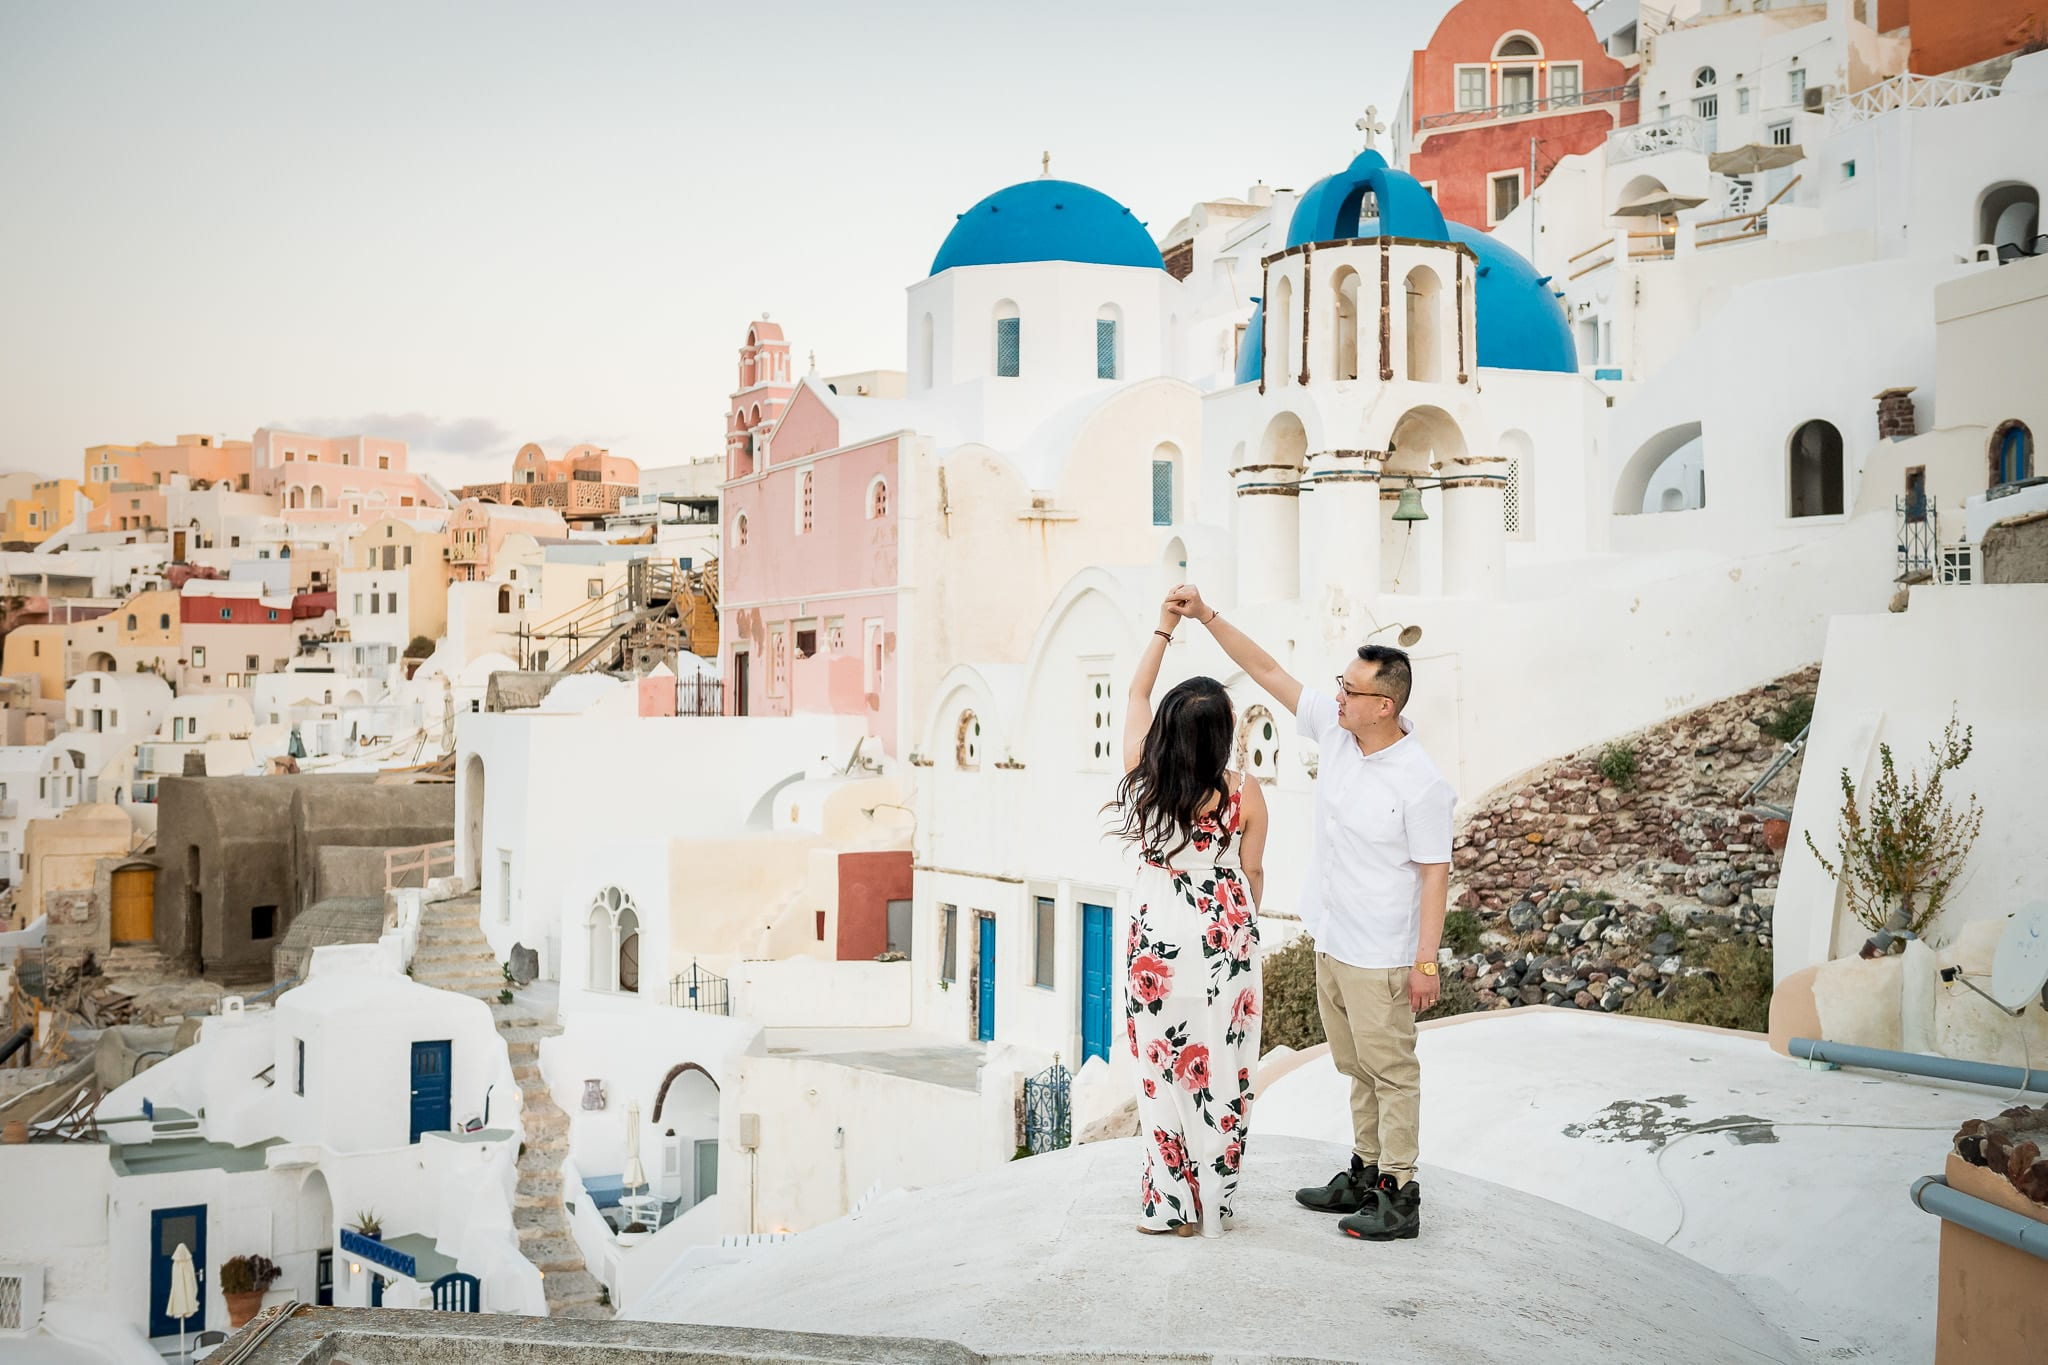 Santorini Honeymoon photo session image of a newlywed man twirling his new bride with the colorful village of Oia in the background